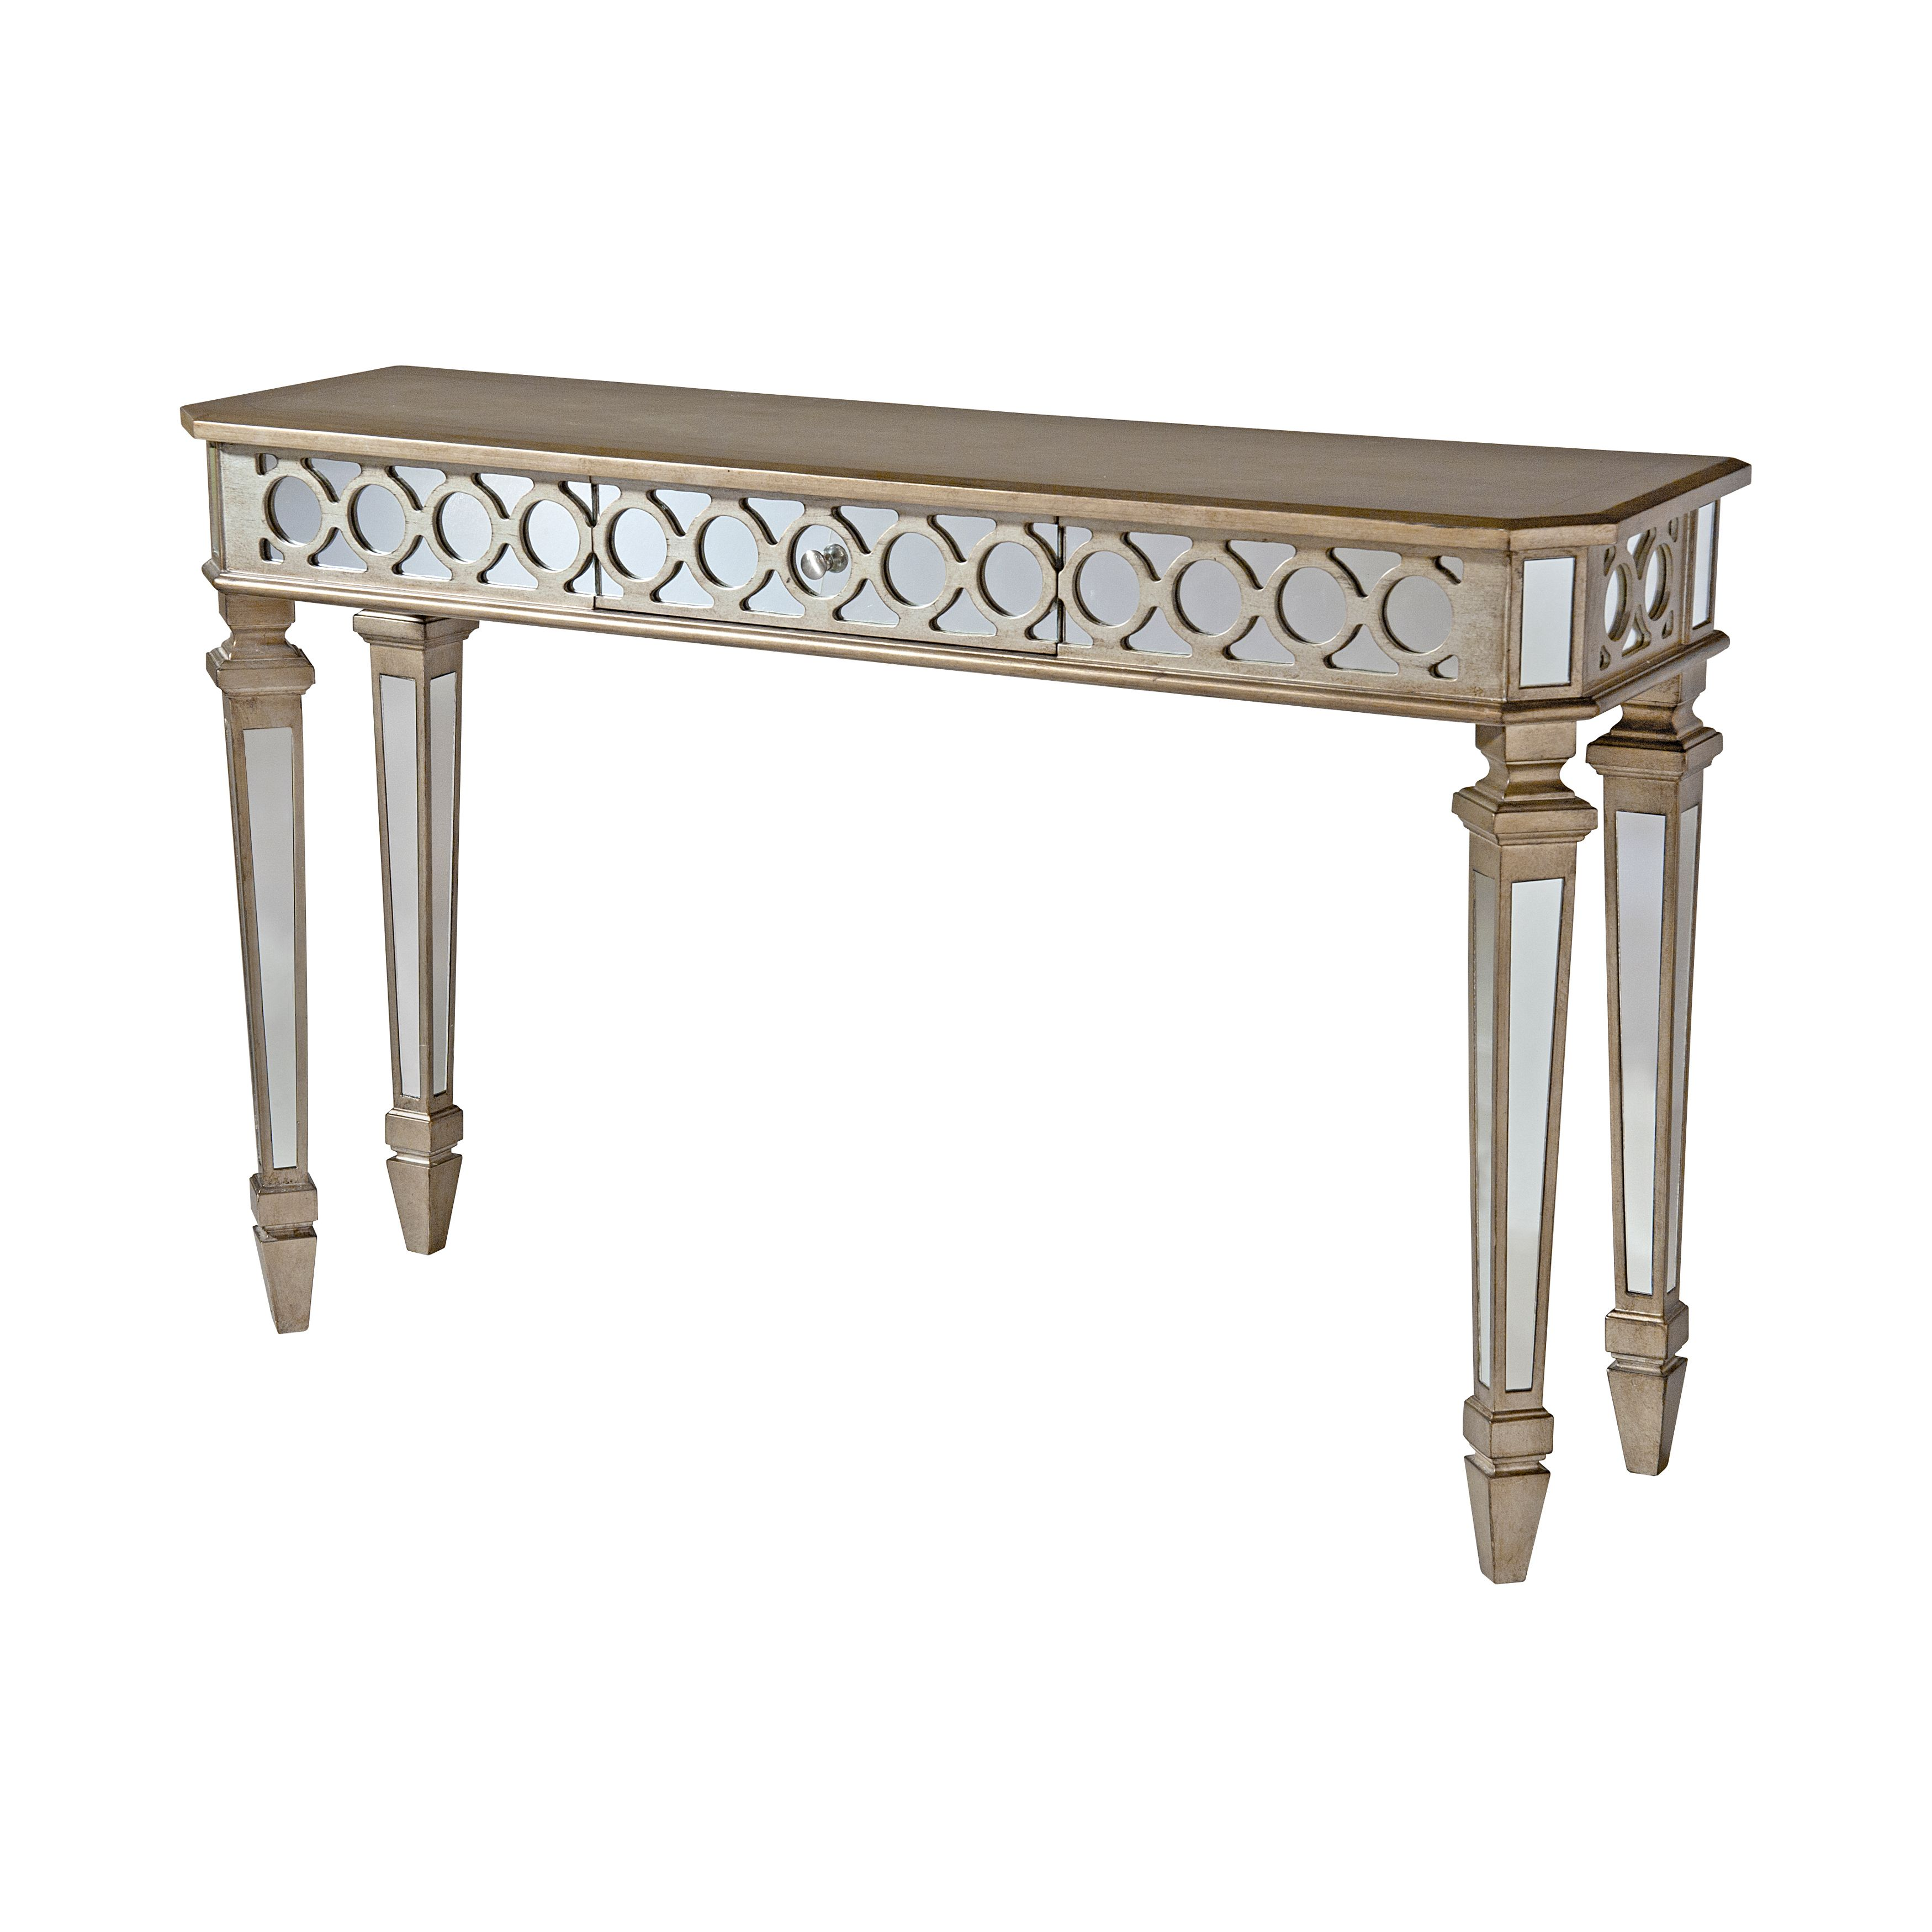 Online Shopping Bedding Furniture Electronics Jewelry Clothing More Mirrored Console Table Console Table Mirror Console